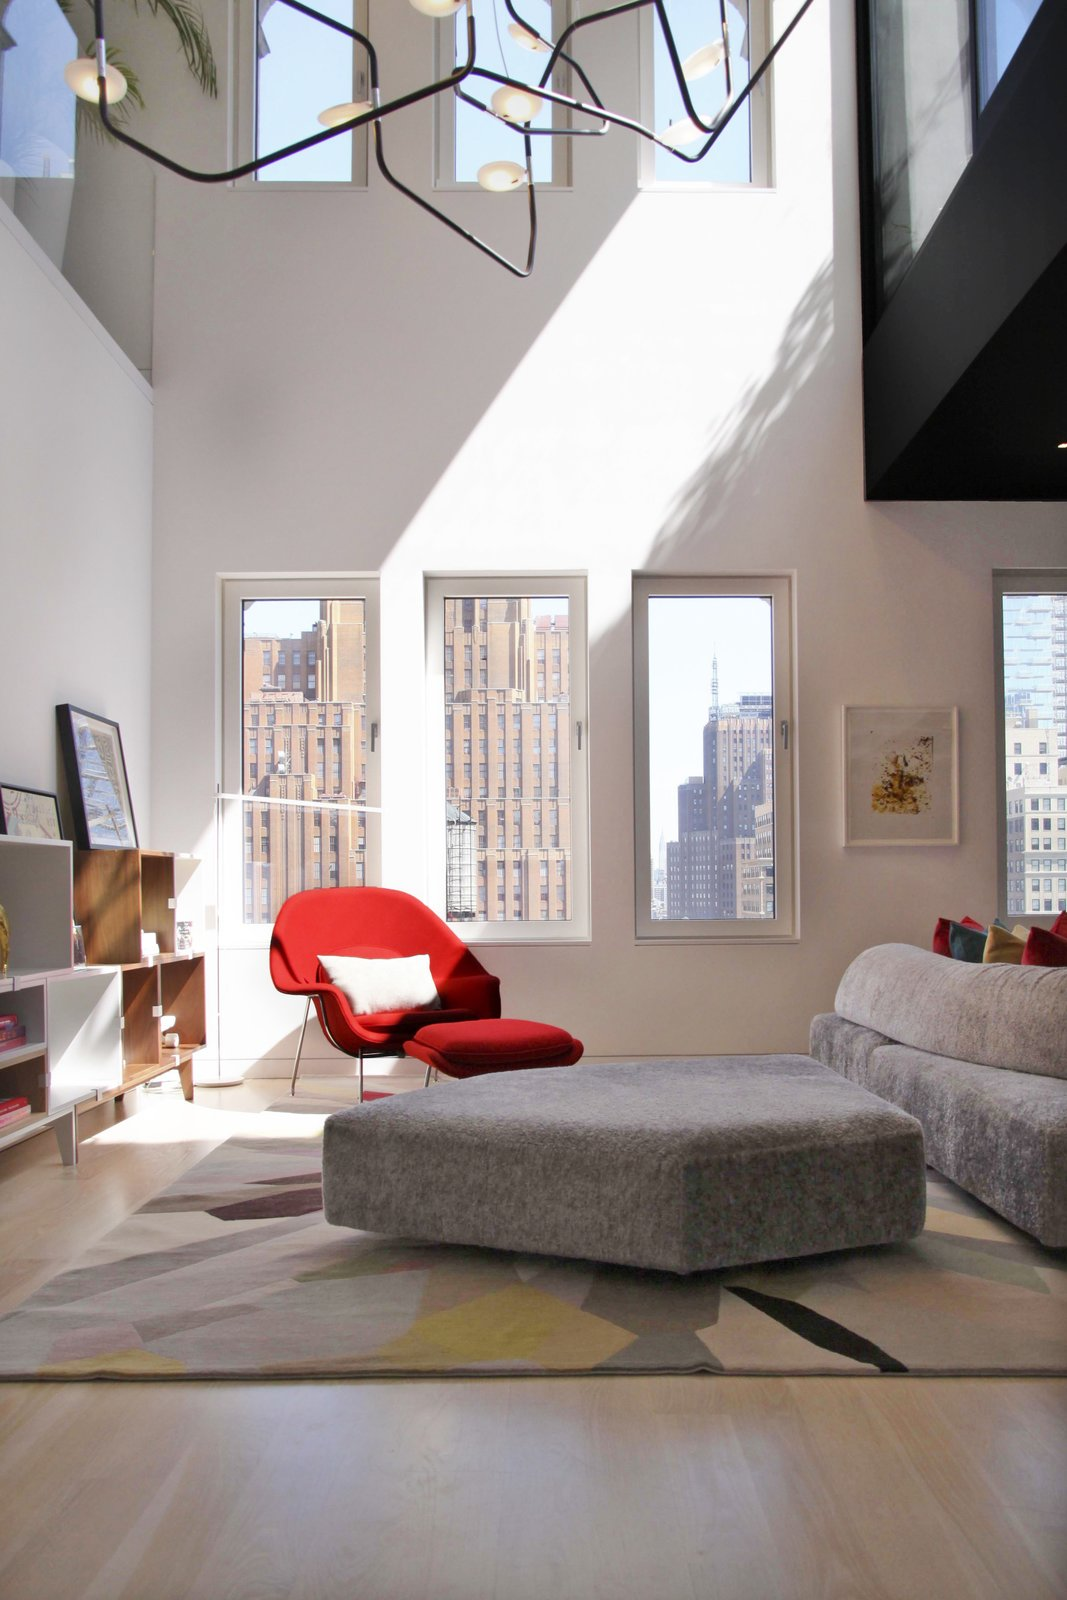 Tribeca Duplex by Young Projects  Photo 5 of 7 in New York Architects on How COVID-19 Is Urging Us to Rethink Home Design